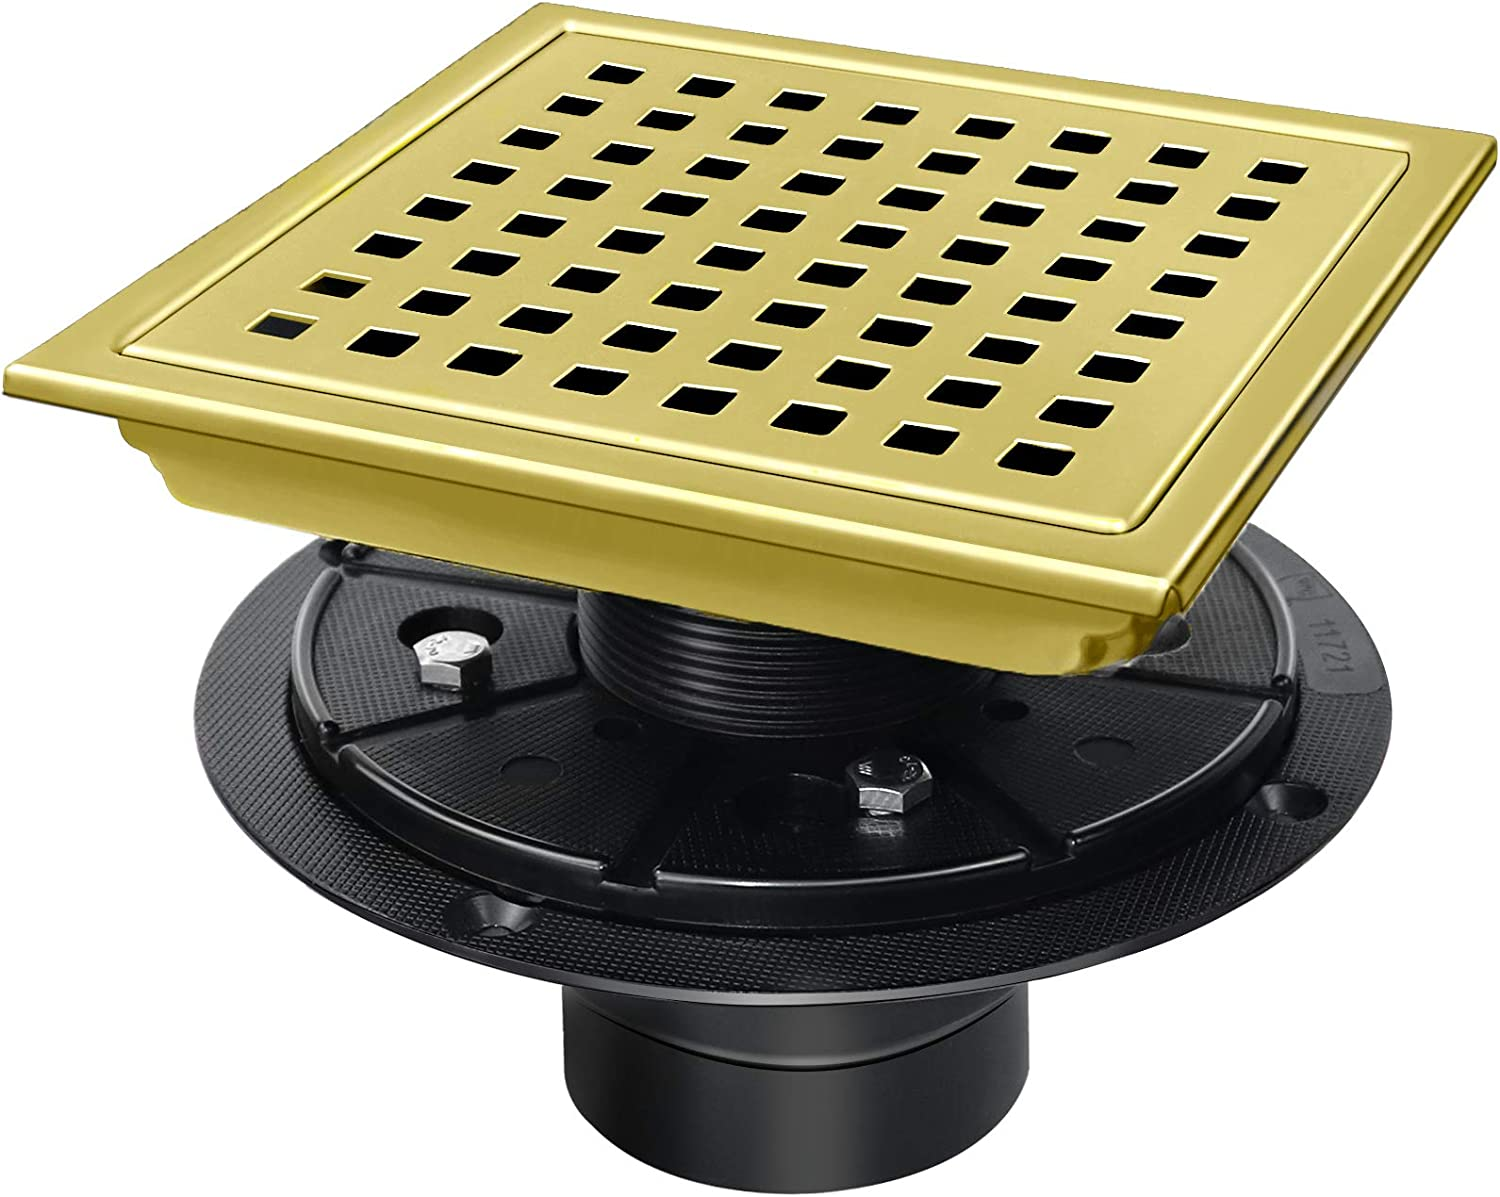 6 inch Gold Ranking integrated 1st place Max 48% OFF Shower Drain with Squ Stainless SUS304 Steel Flange